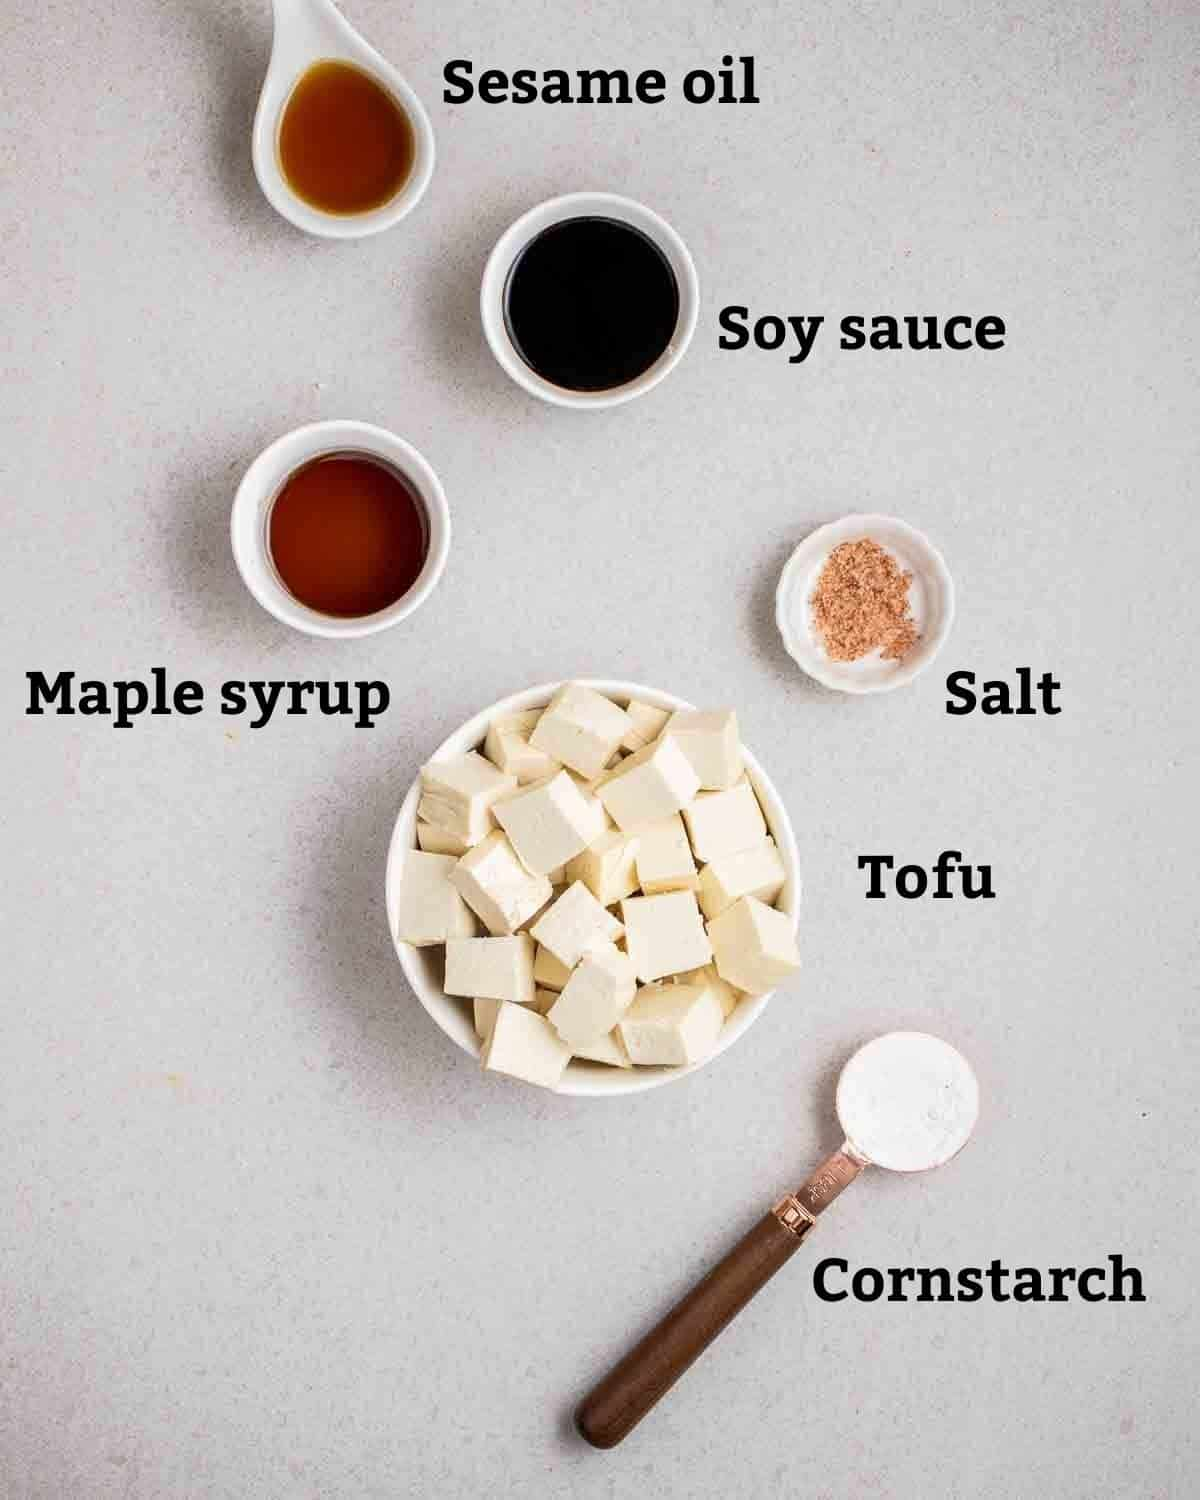 More ingredients needed for japchae like tofu, cornstarch, maple syrup, soy sauce and sesame oil on a grey background.